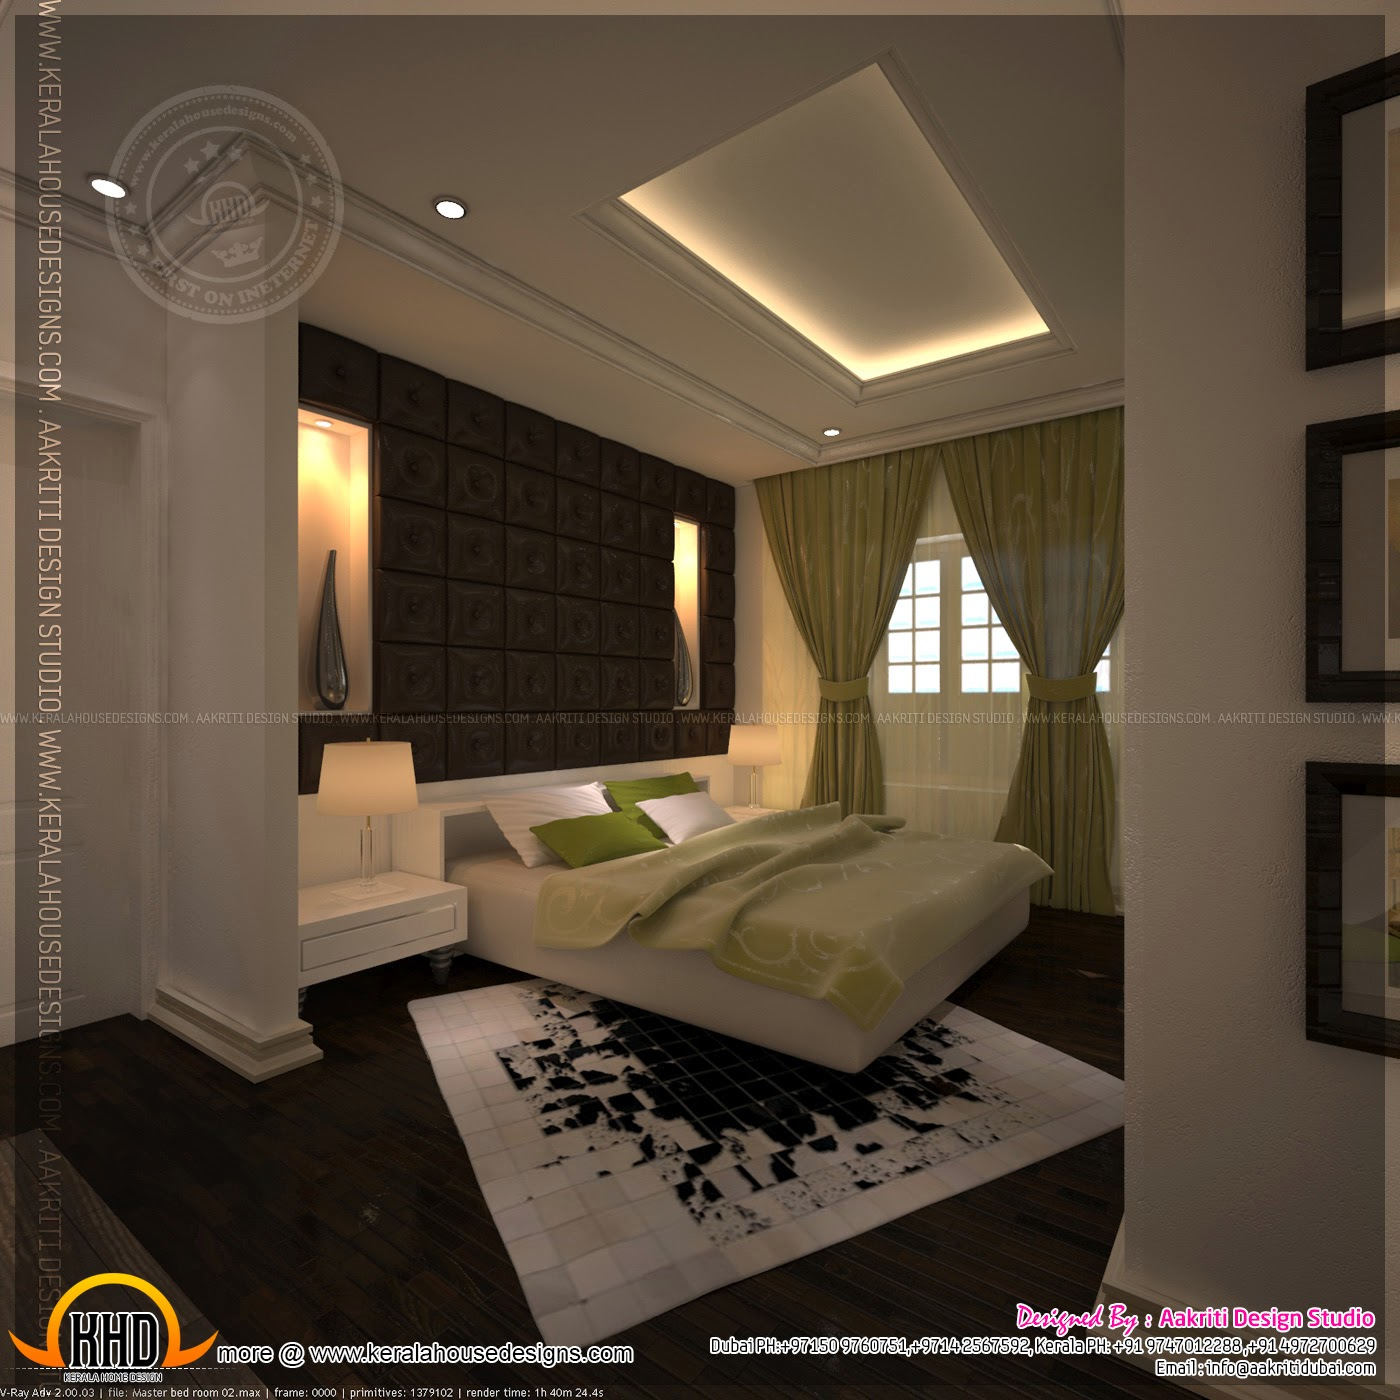 Master bedroom and bathroom interior design kerala home for House interior design nagercoil